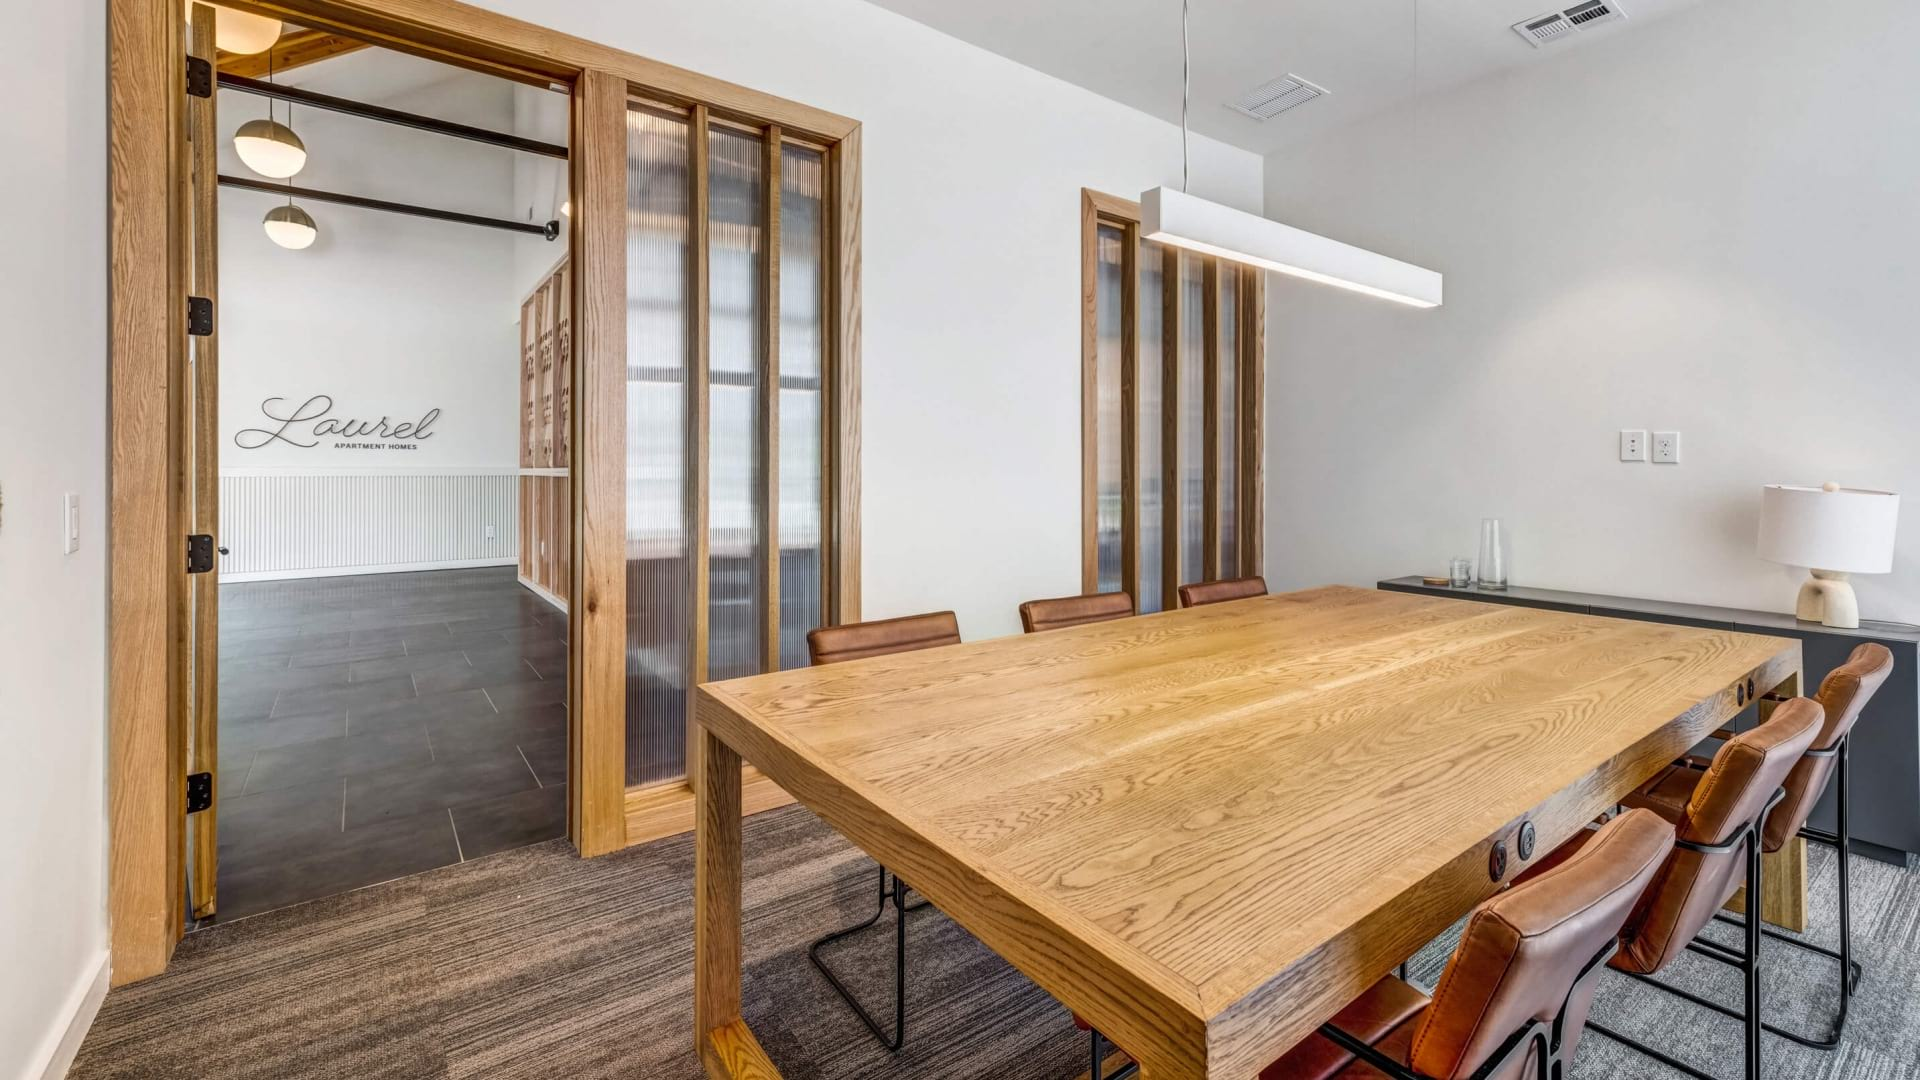 Conference room with modern amenities